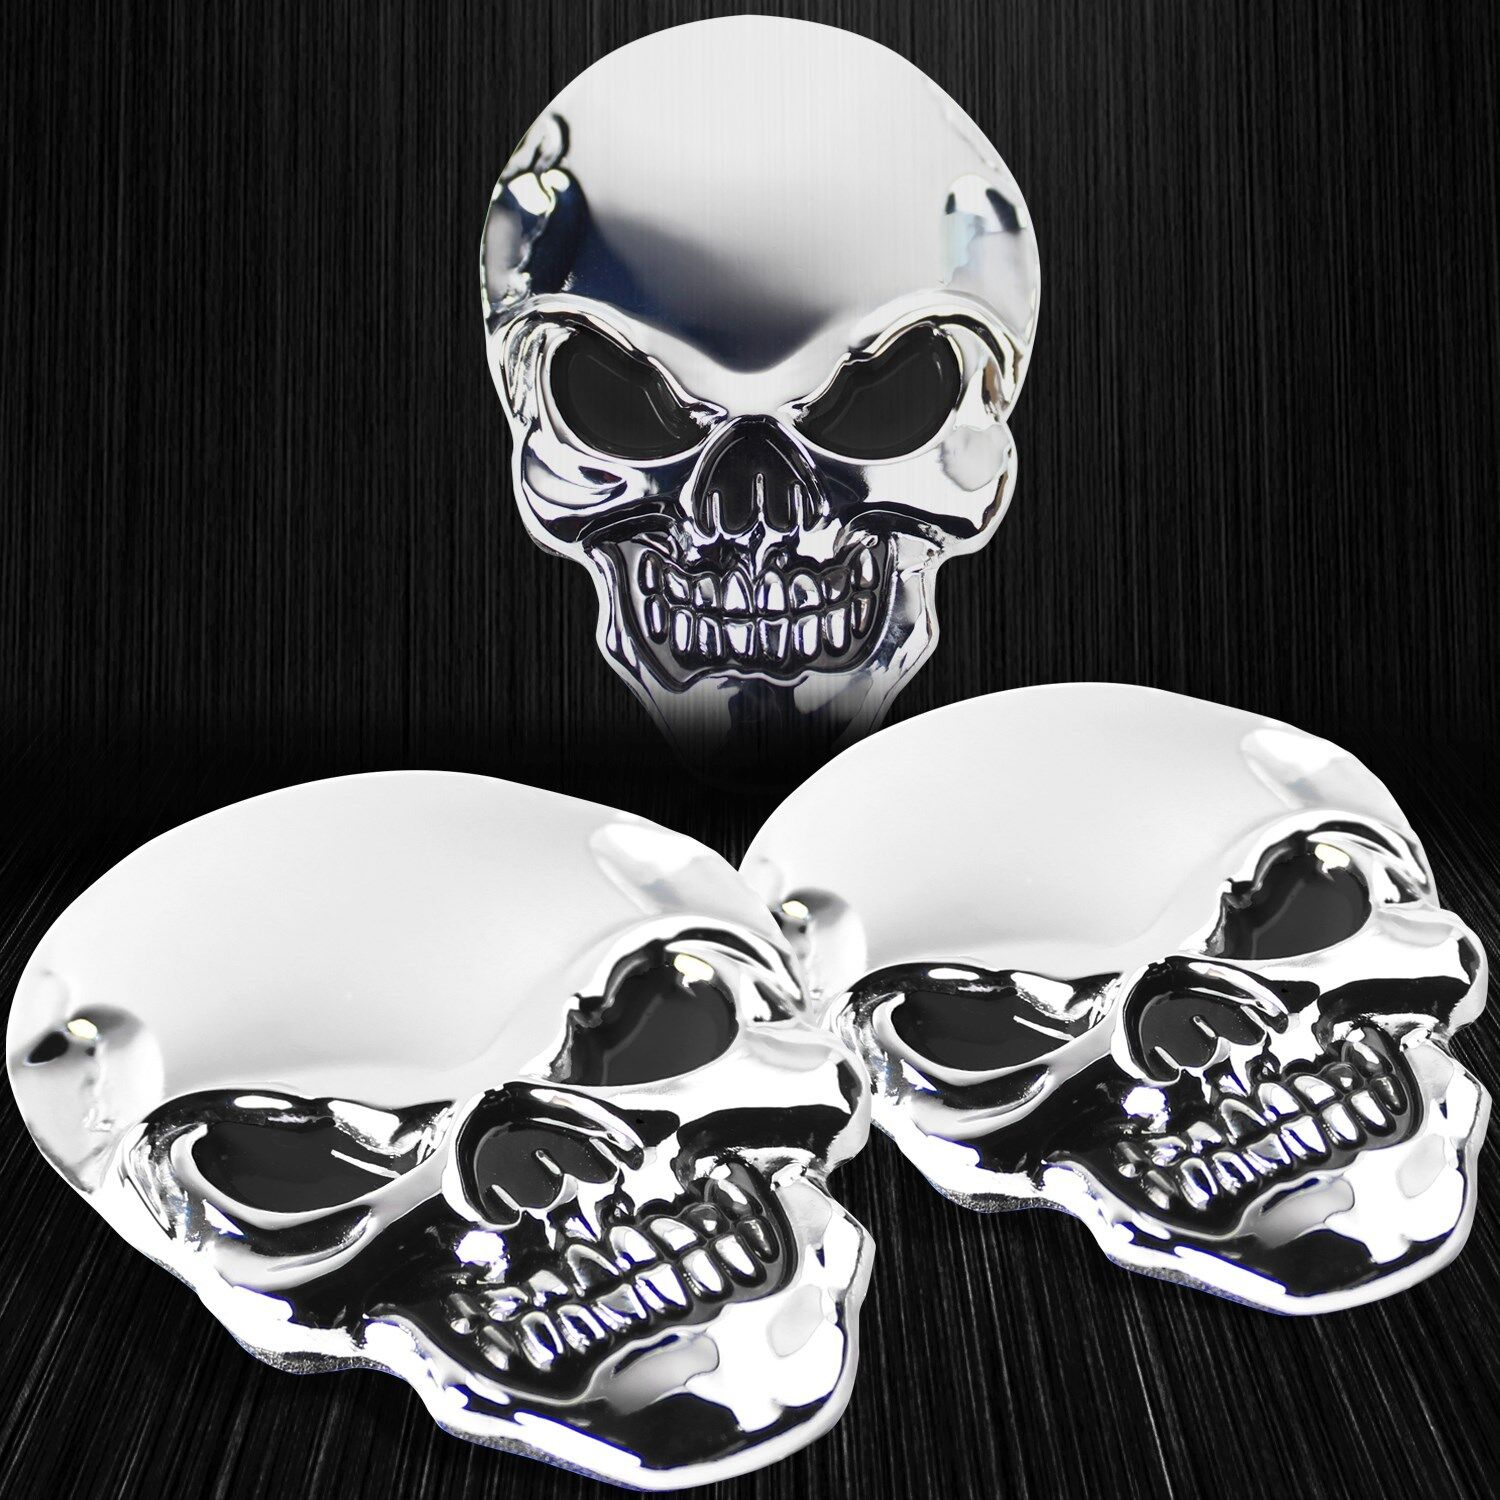 Details about 2x real metal 3d stainless steel ss emblem skull skeleton reaper sticker chrome